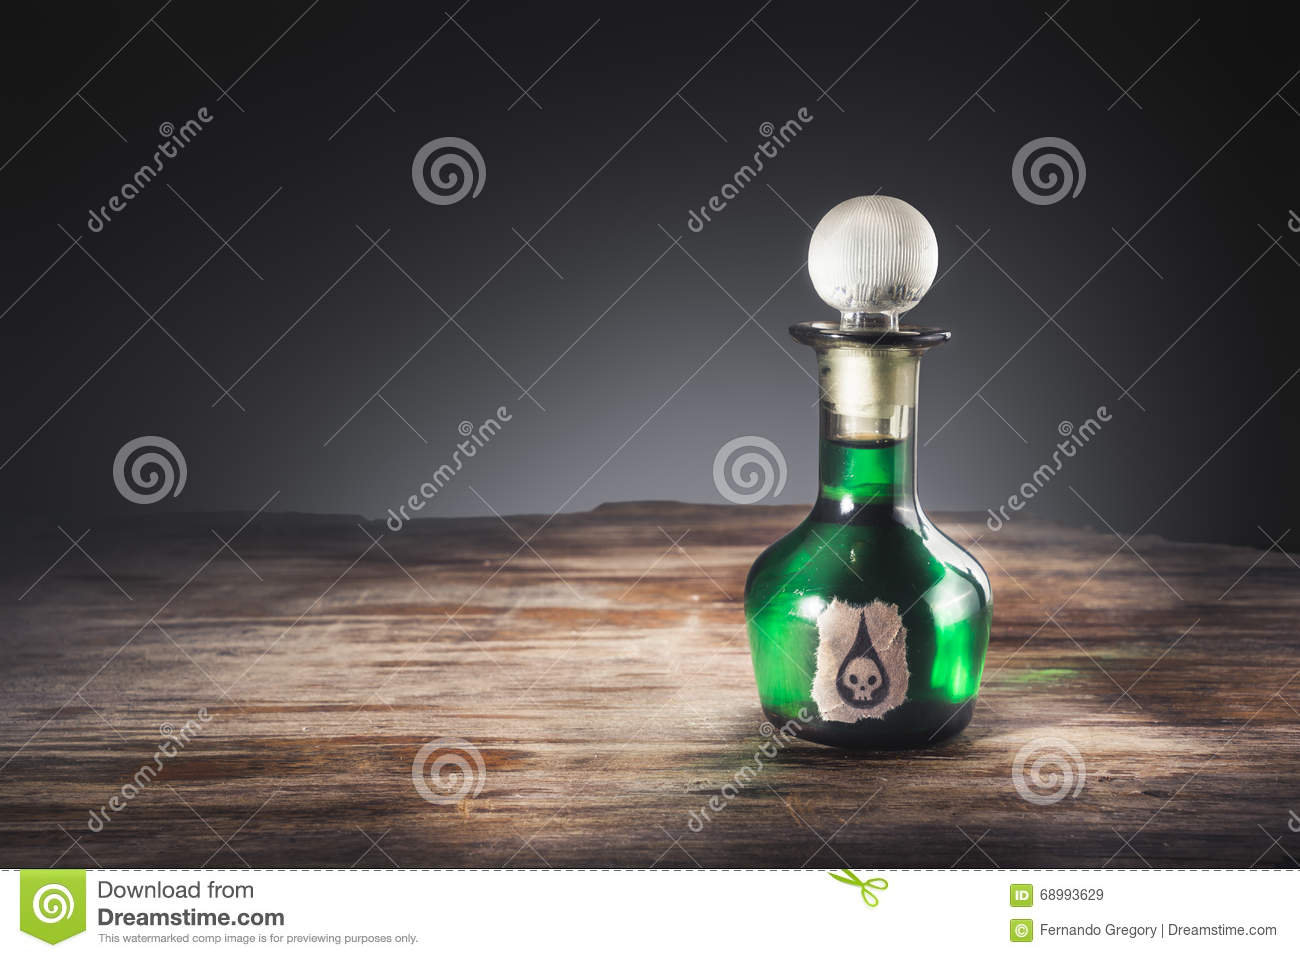 Poison bottle on a table